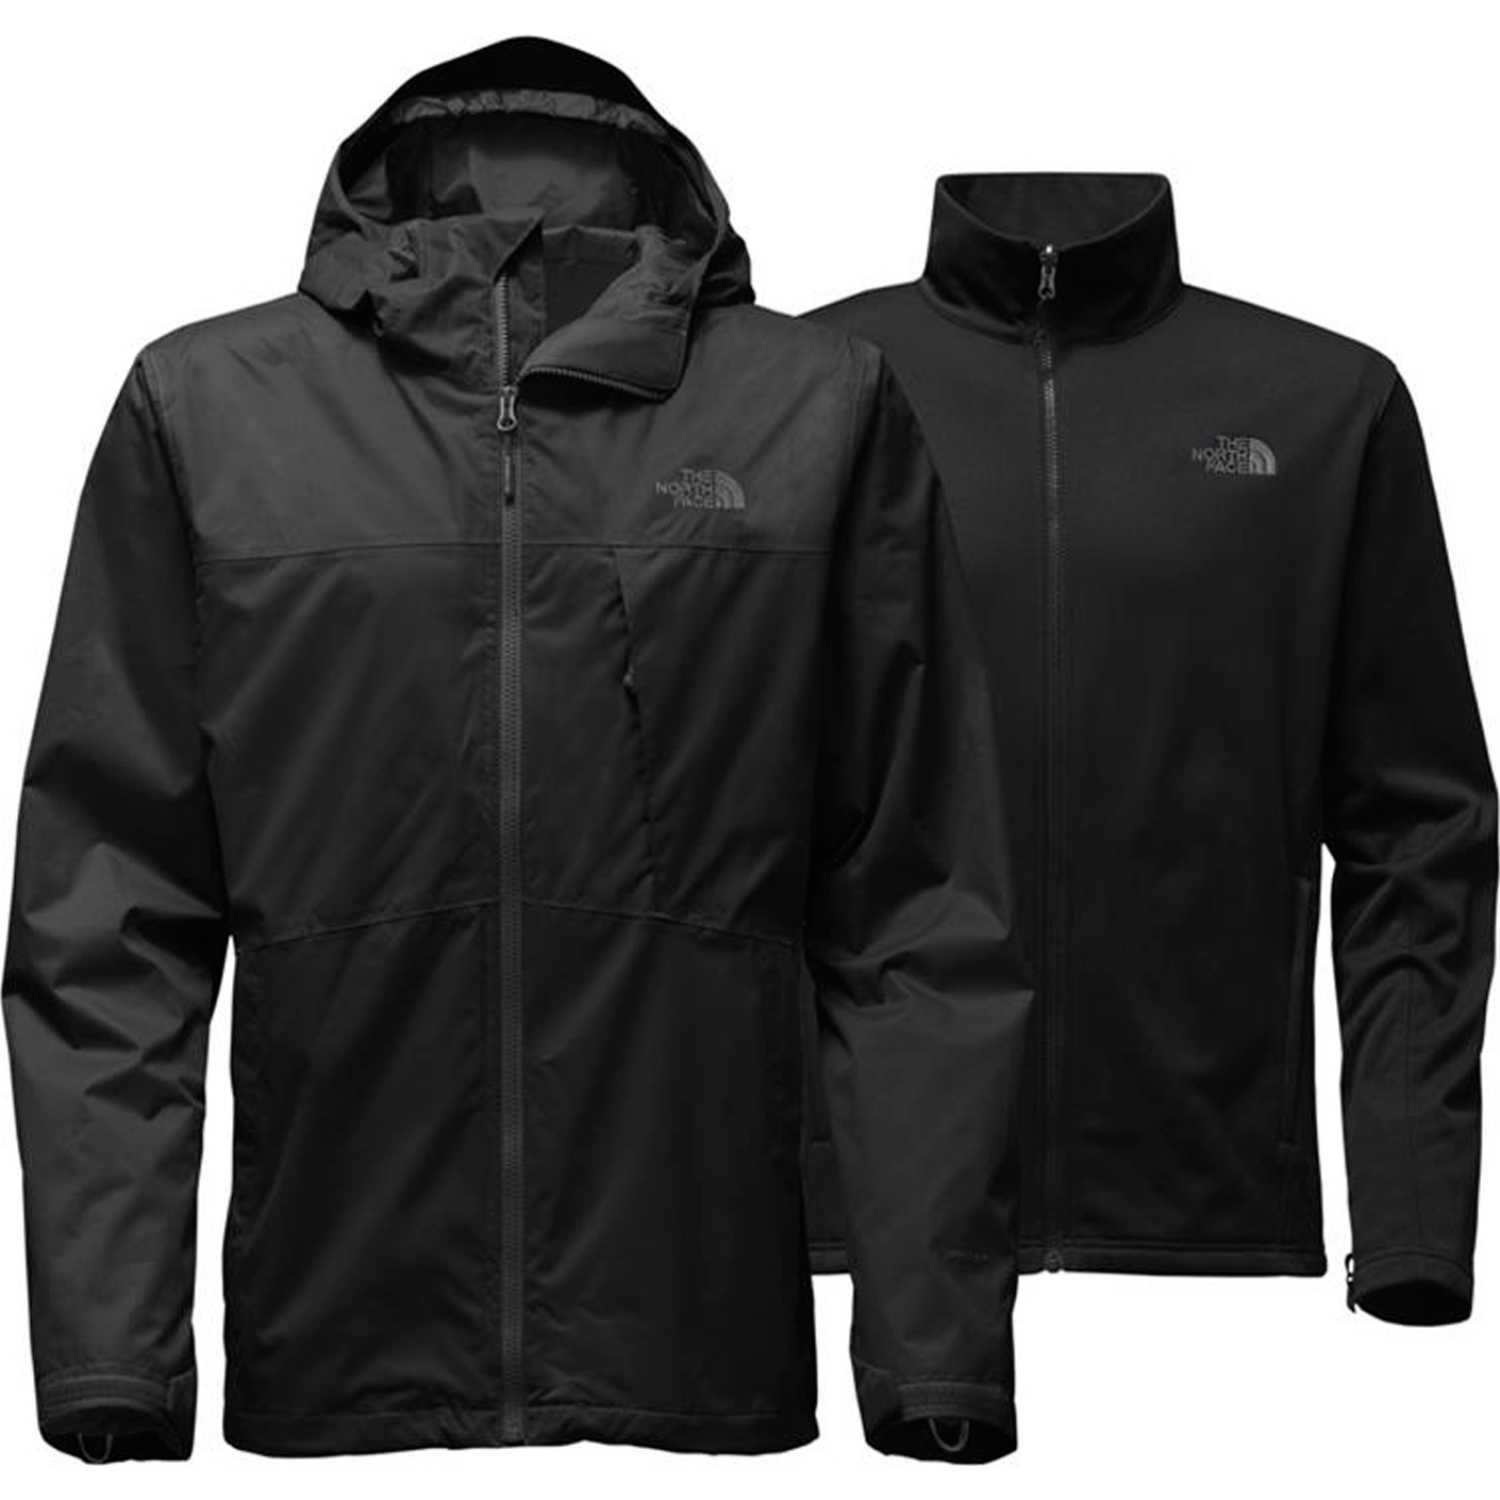 The North Face m arrowood triclimate jacket Negro / negro Impermeables y chaquetas